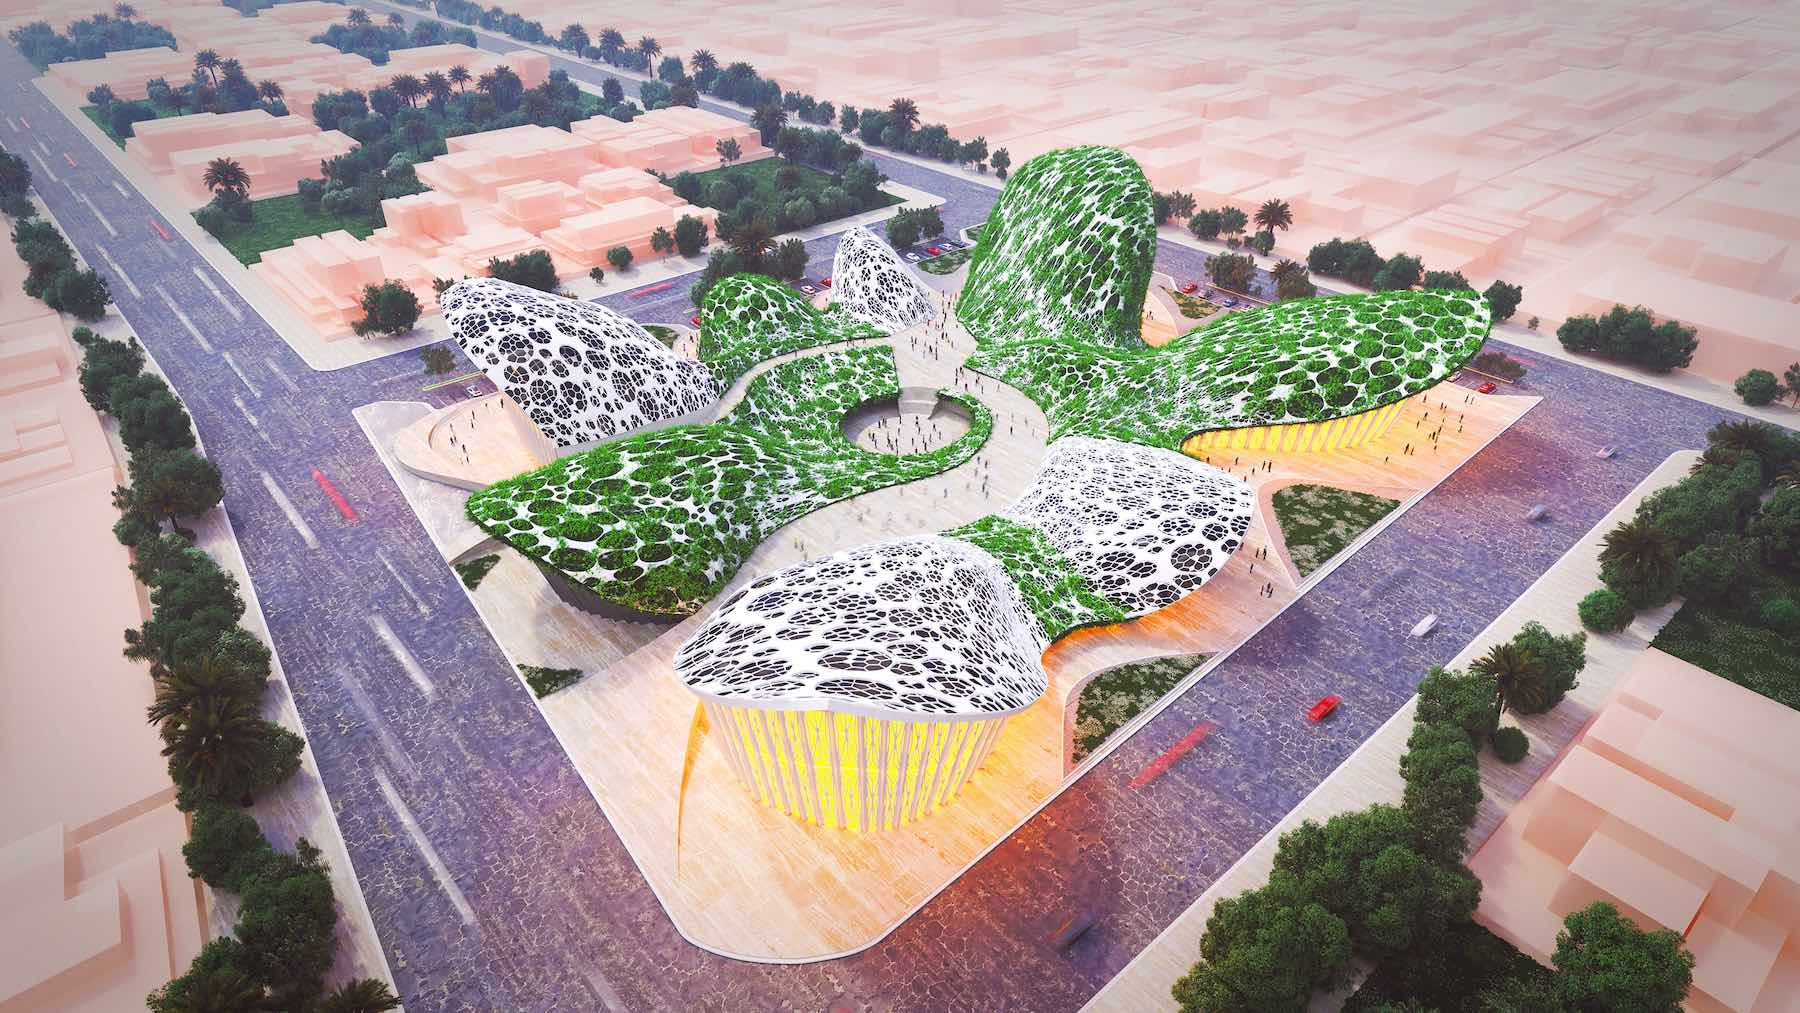 Baghdad Forest & Agricultural Research Center designed by Lana Roshen